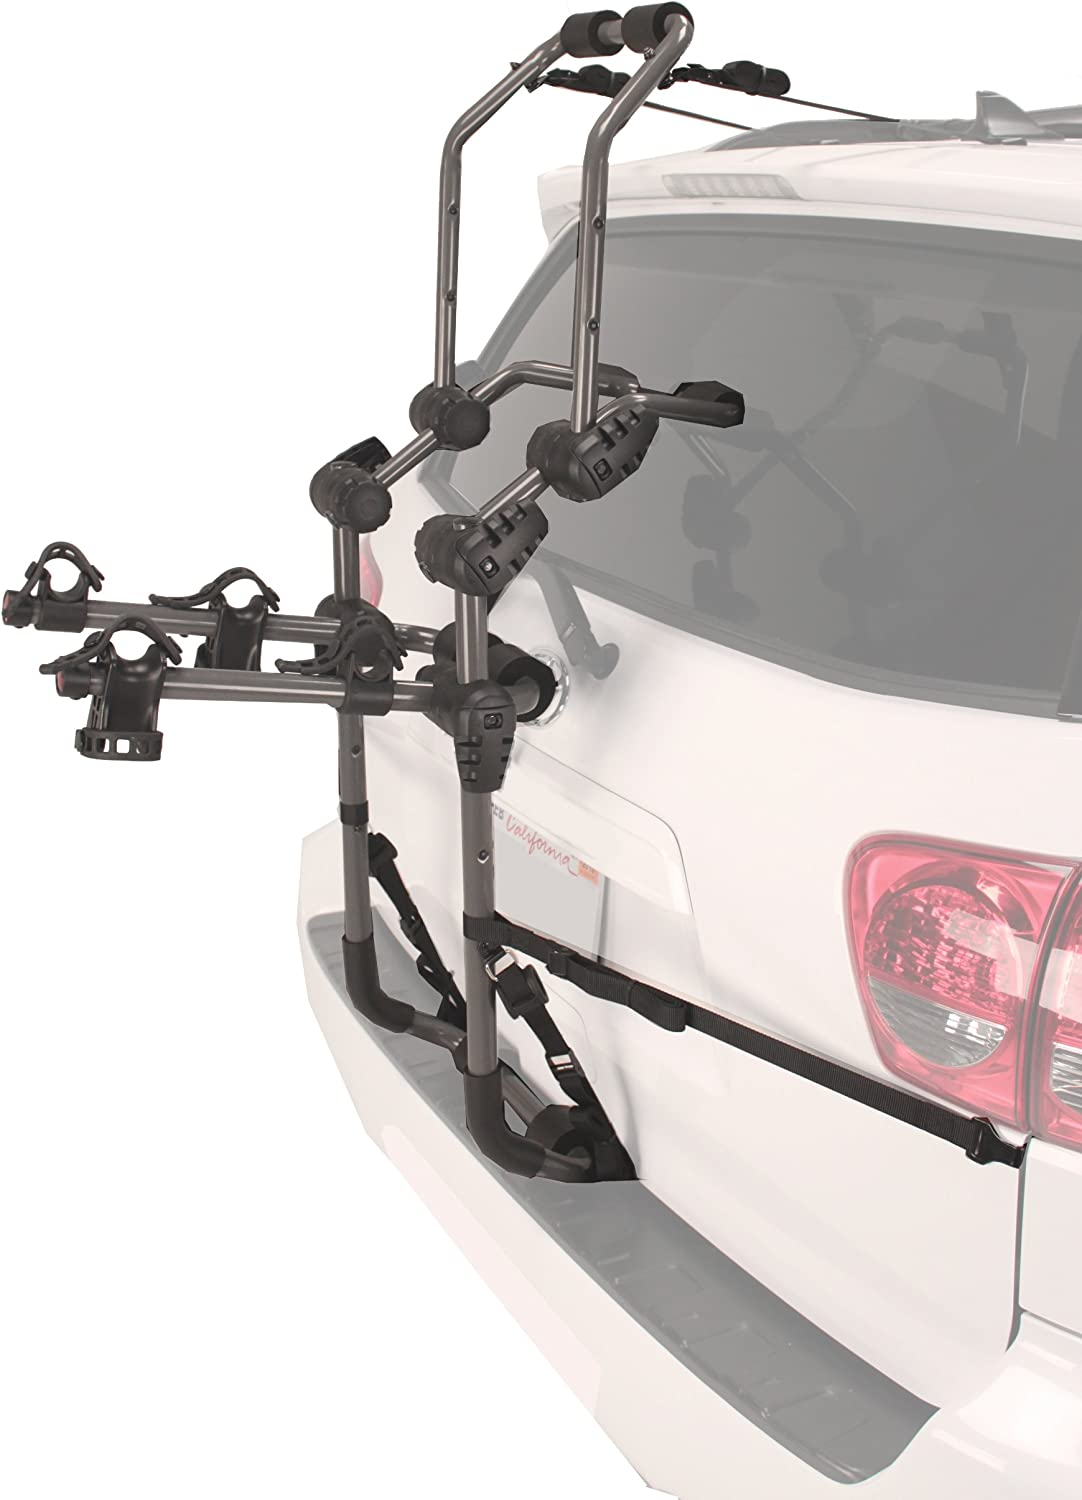 Hollywood Racks Over-The-Top Trunk Mounted Bike Rack